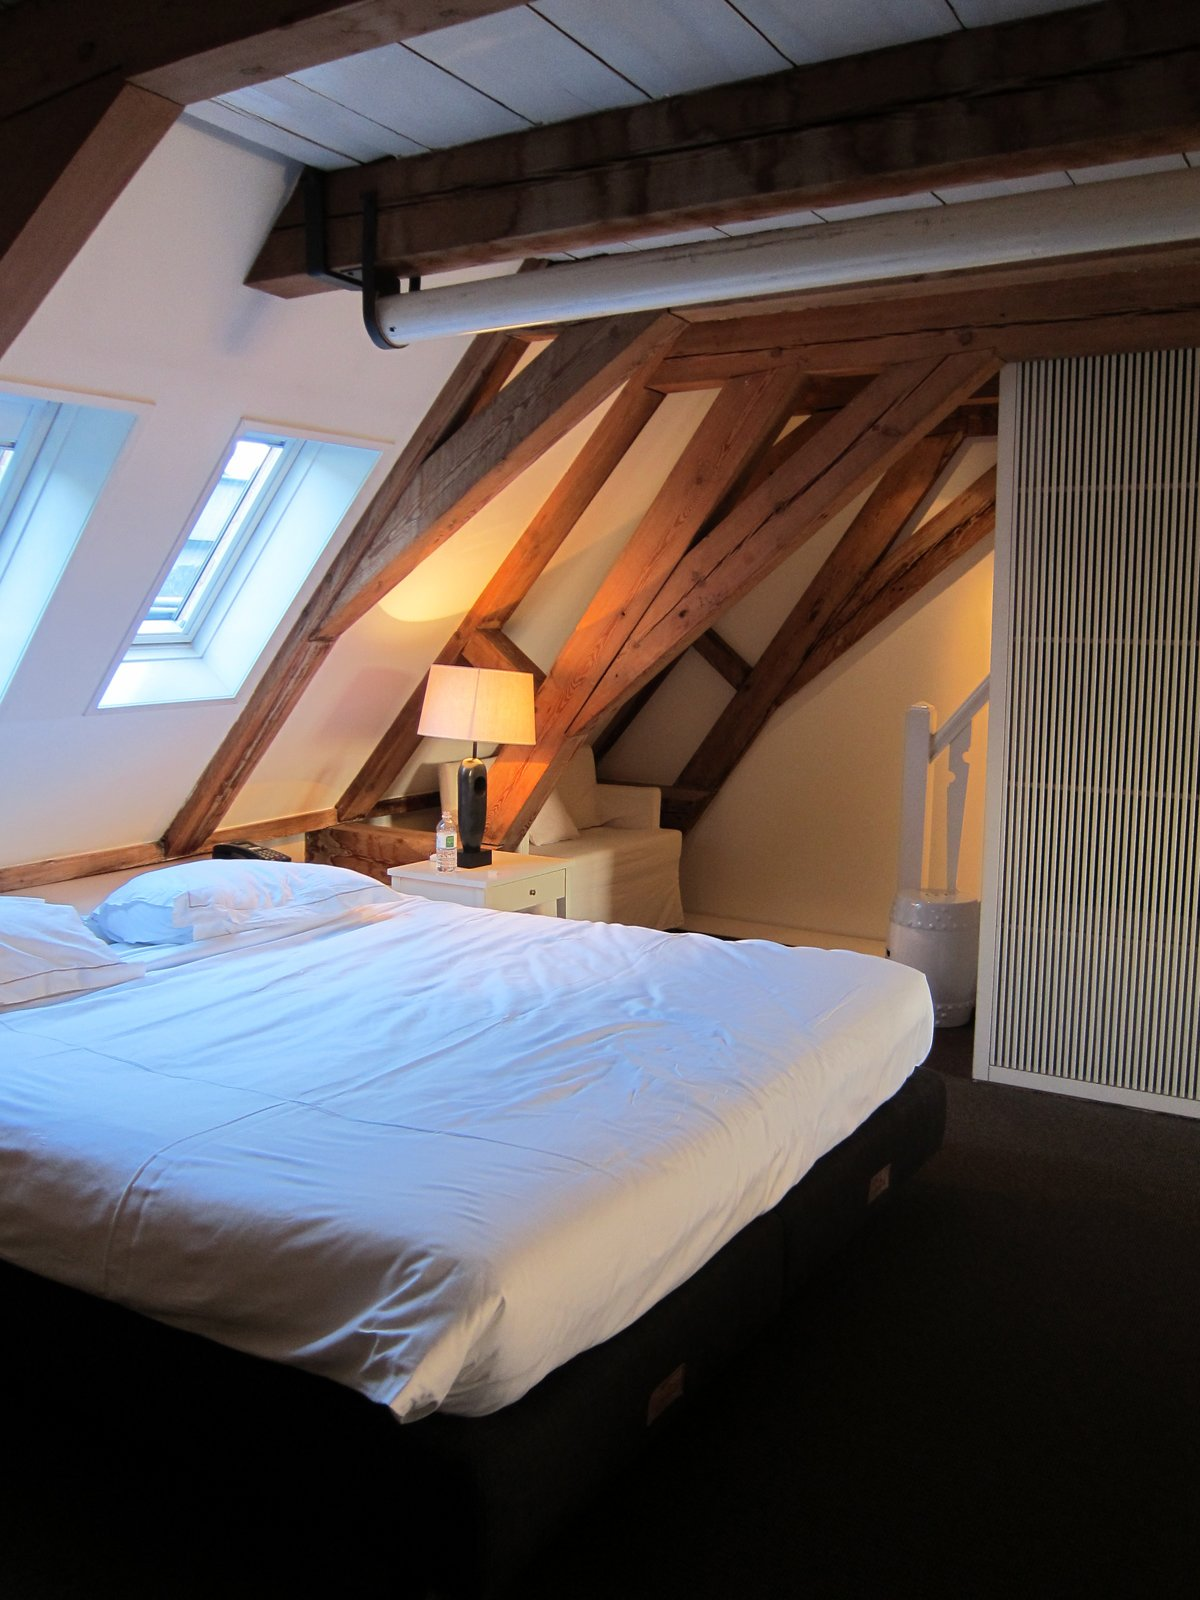 This was my room, set into the upper floor of a historic canal house. A very cozy and appealing spot to land after a long transatlantic flight.  The Dylan, Amsterdam by Jaime Gillin